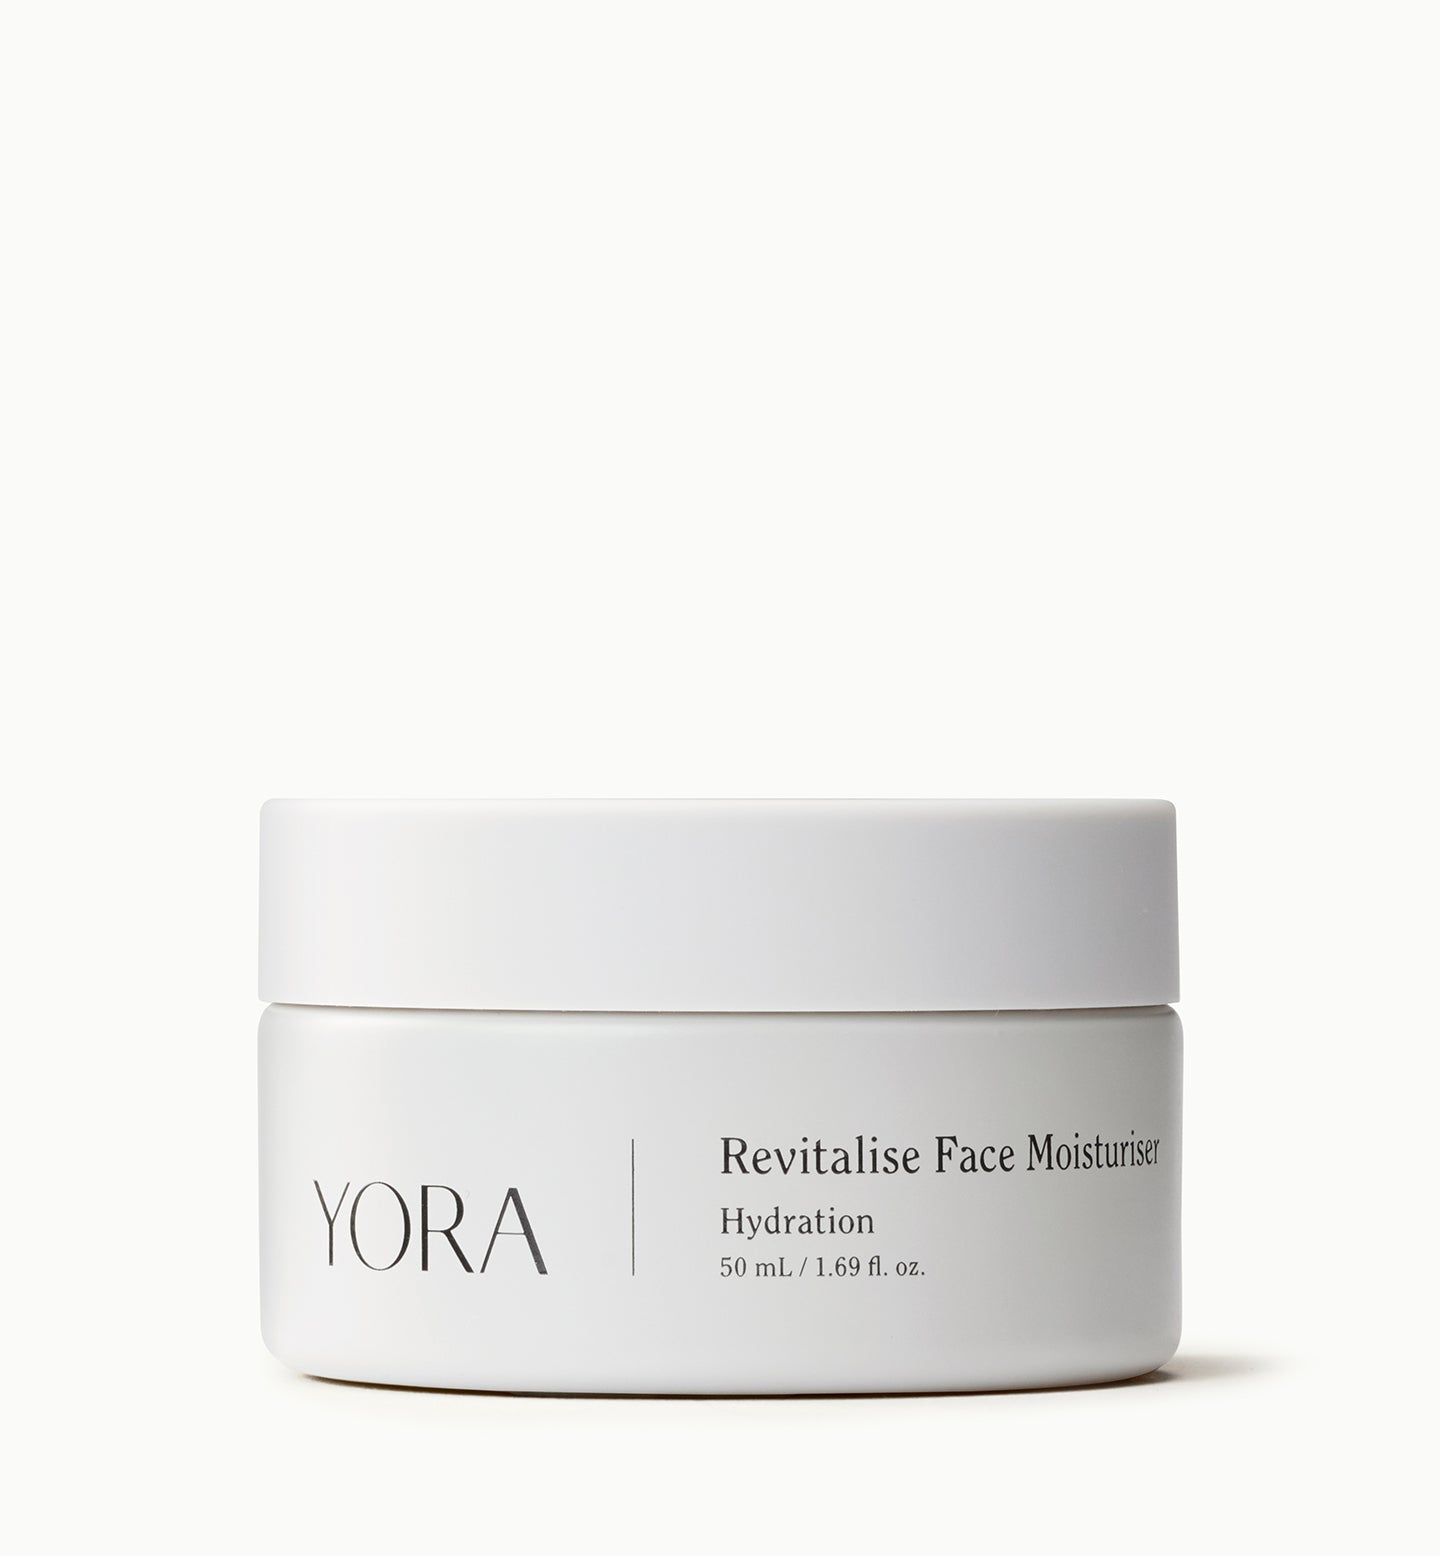 Revitalise Face Moisturiser - Front